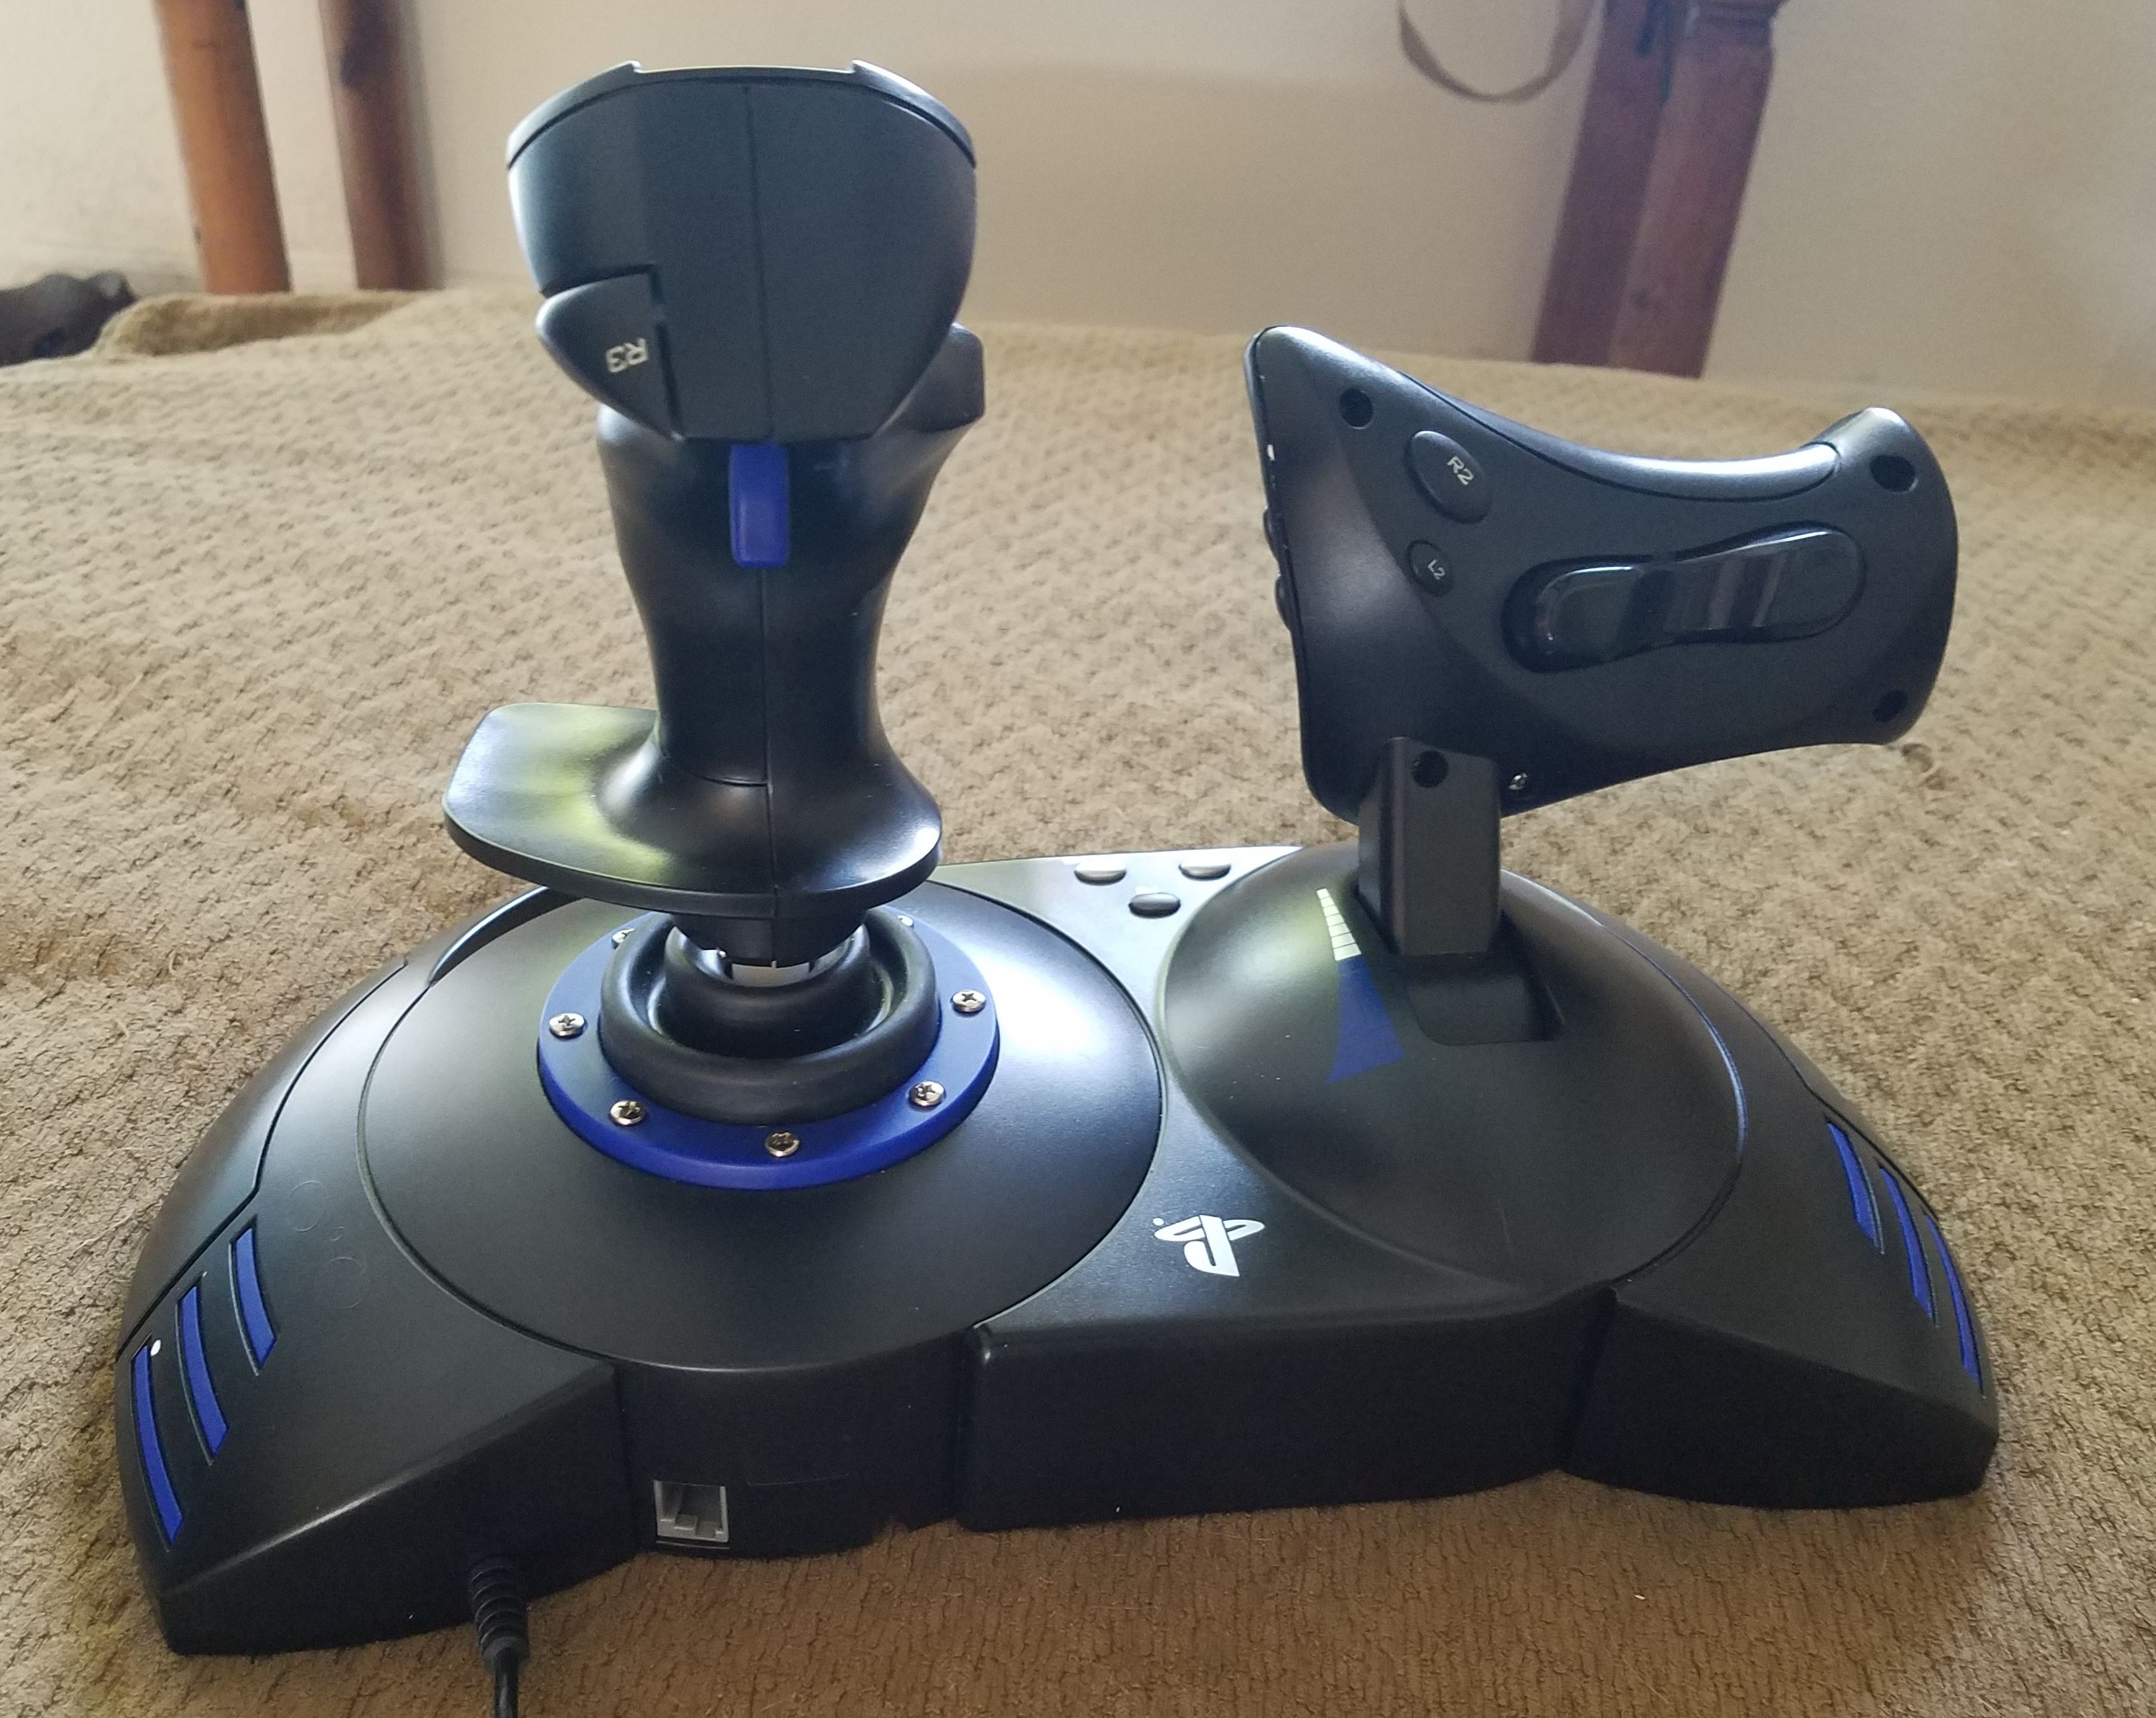 Thrustmaster T Flight Hotas 4 Flight Stick Review - Take Control of